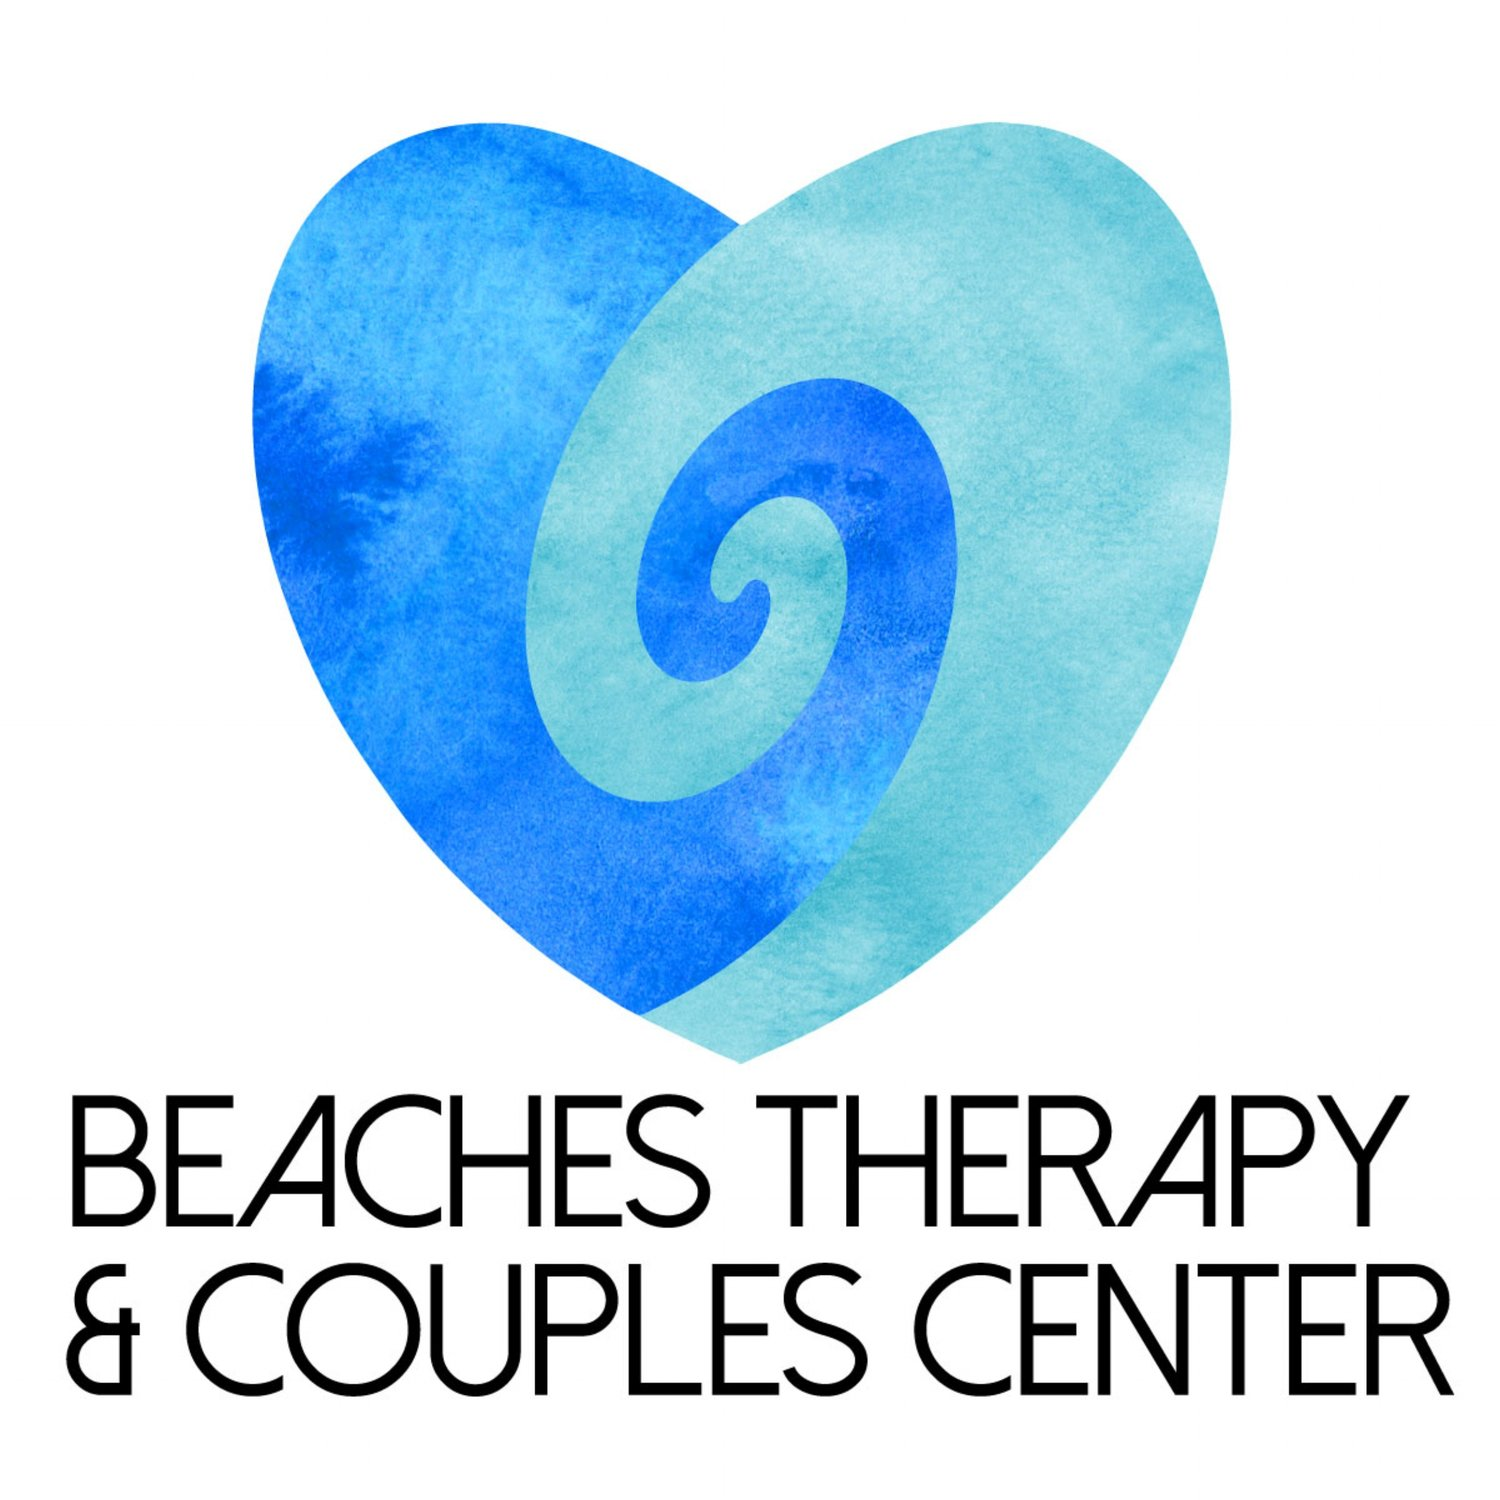 Beaches Therapy & Couples Center, Dr. Katie Winham, Ph.D., Licensed Marriage and Family Therapist